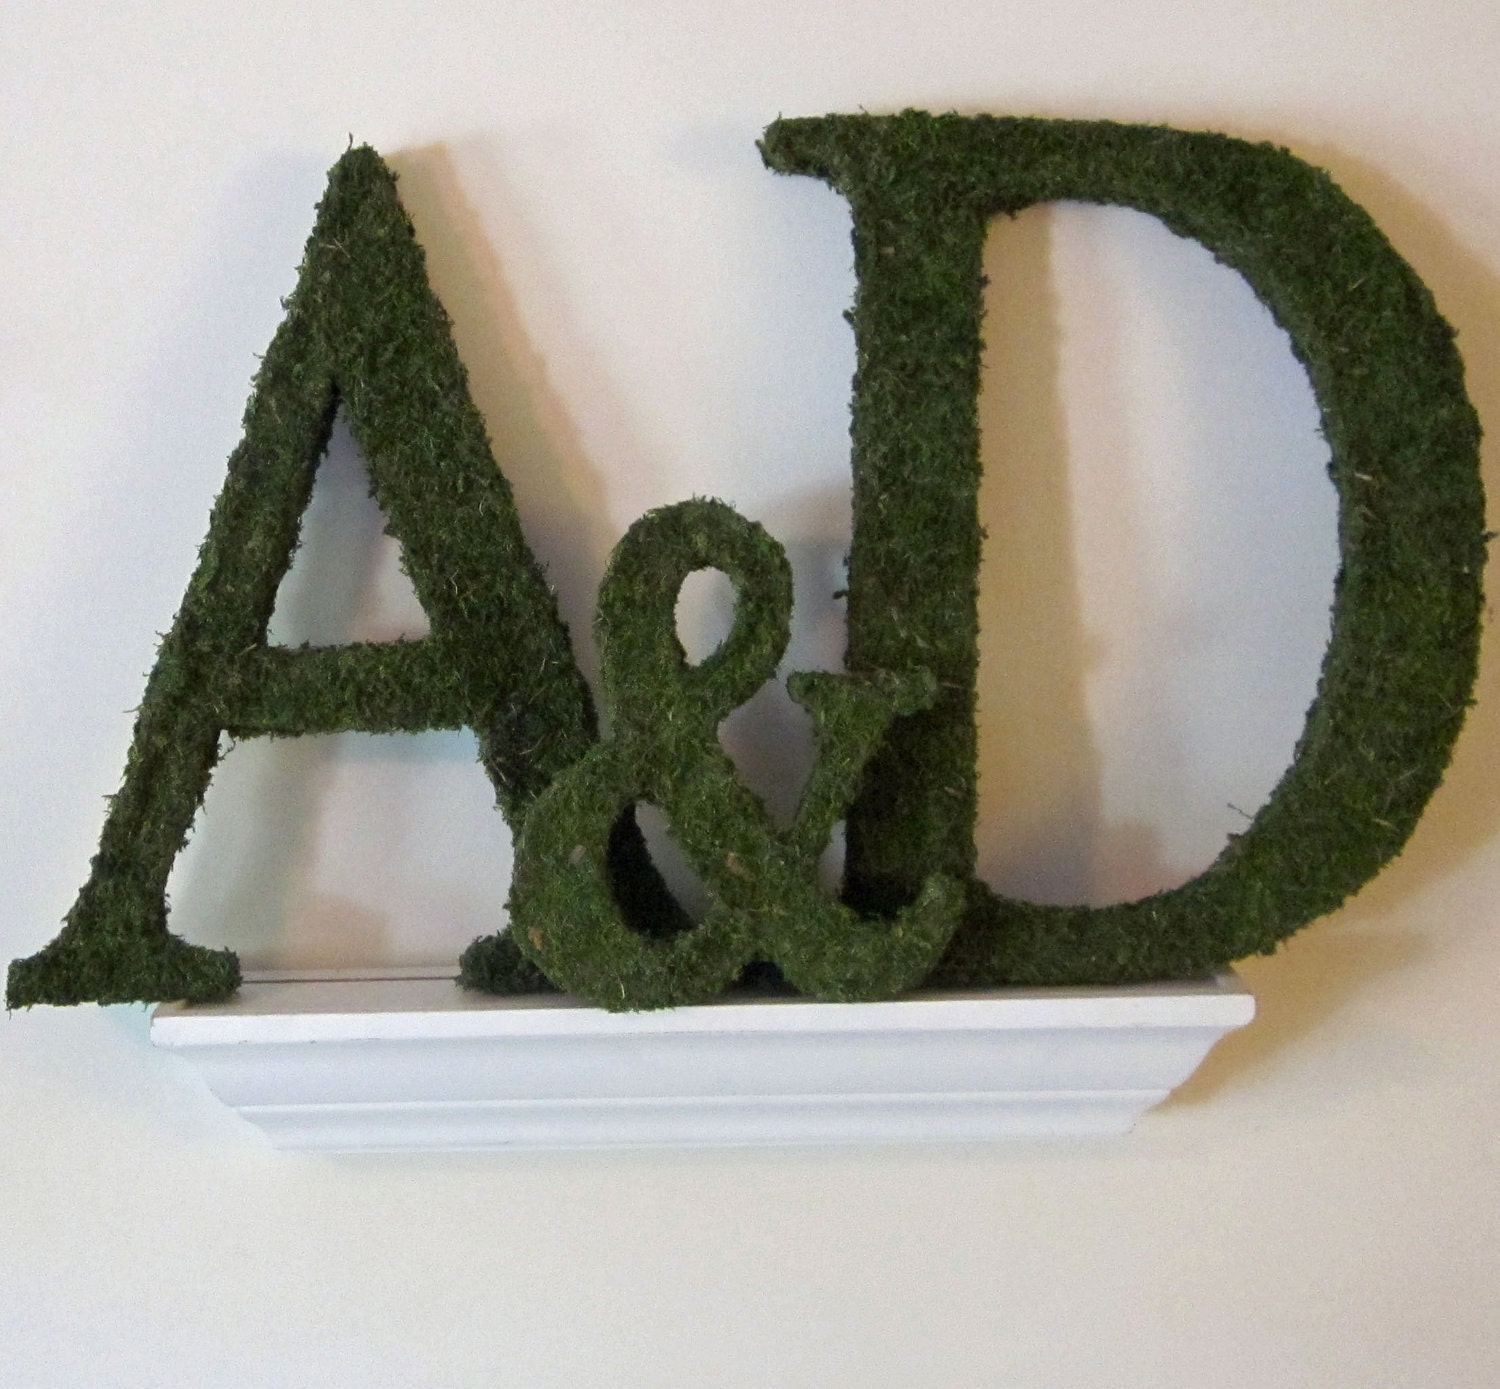 Moss Covered Letters: Moss Covered Wedding Monograms Ampersand Set 12 Inches